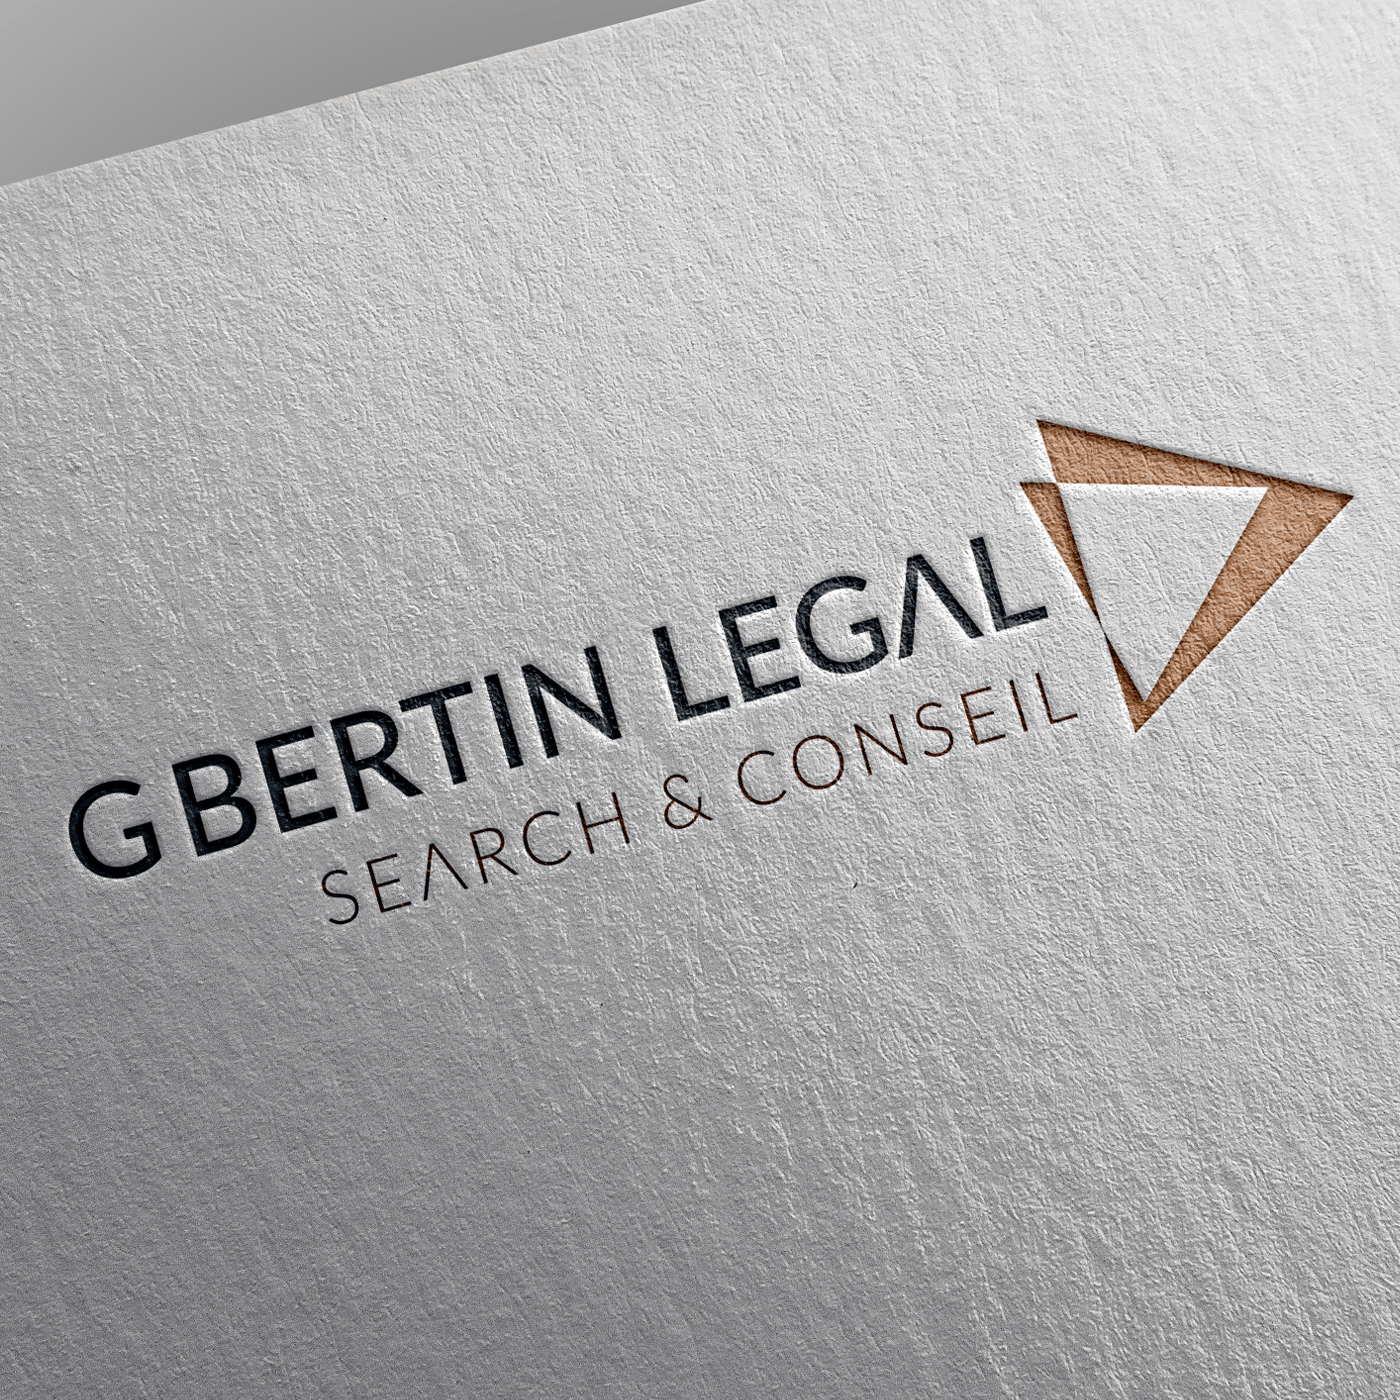 Grégoire Bertin G Bertin Legal